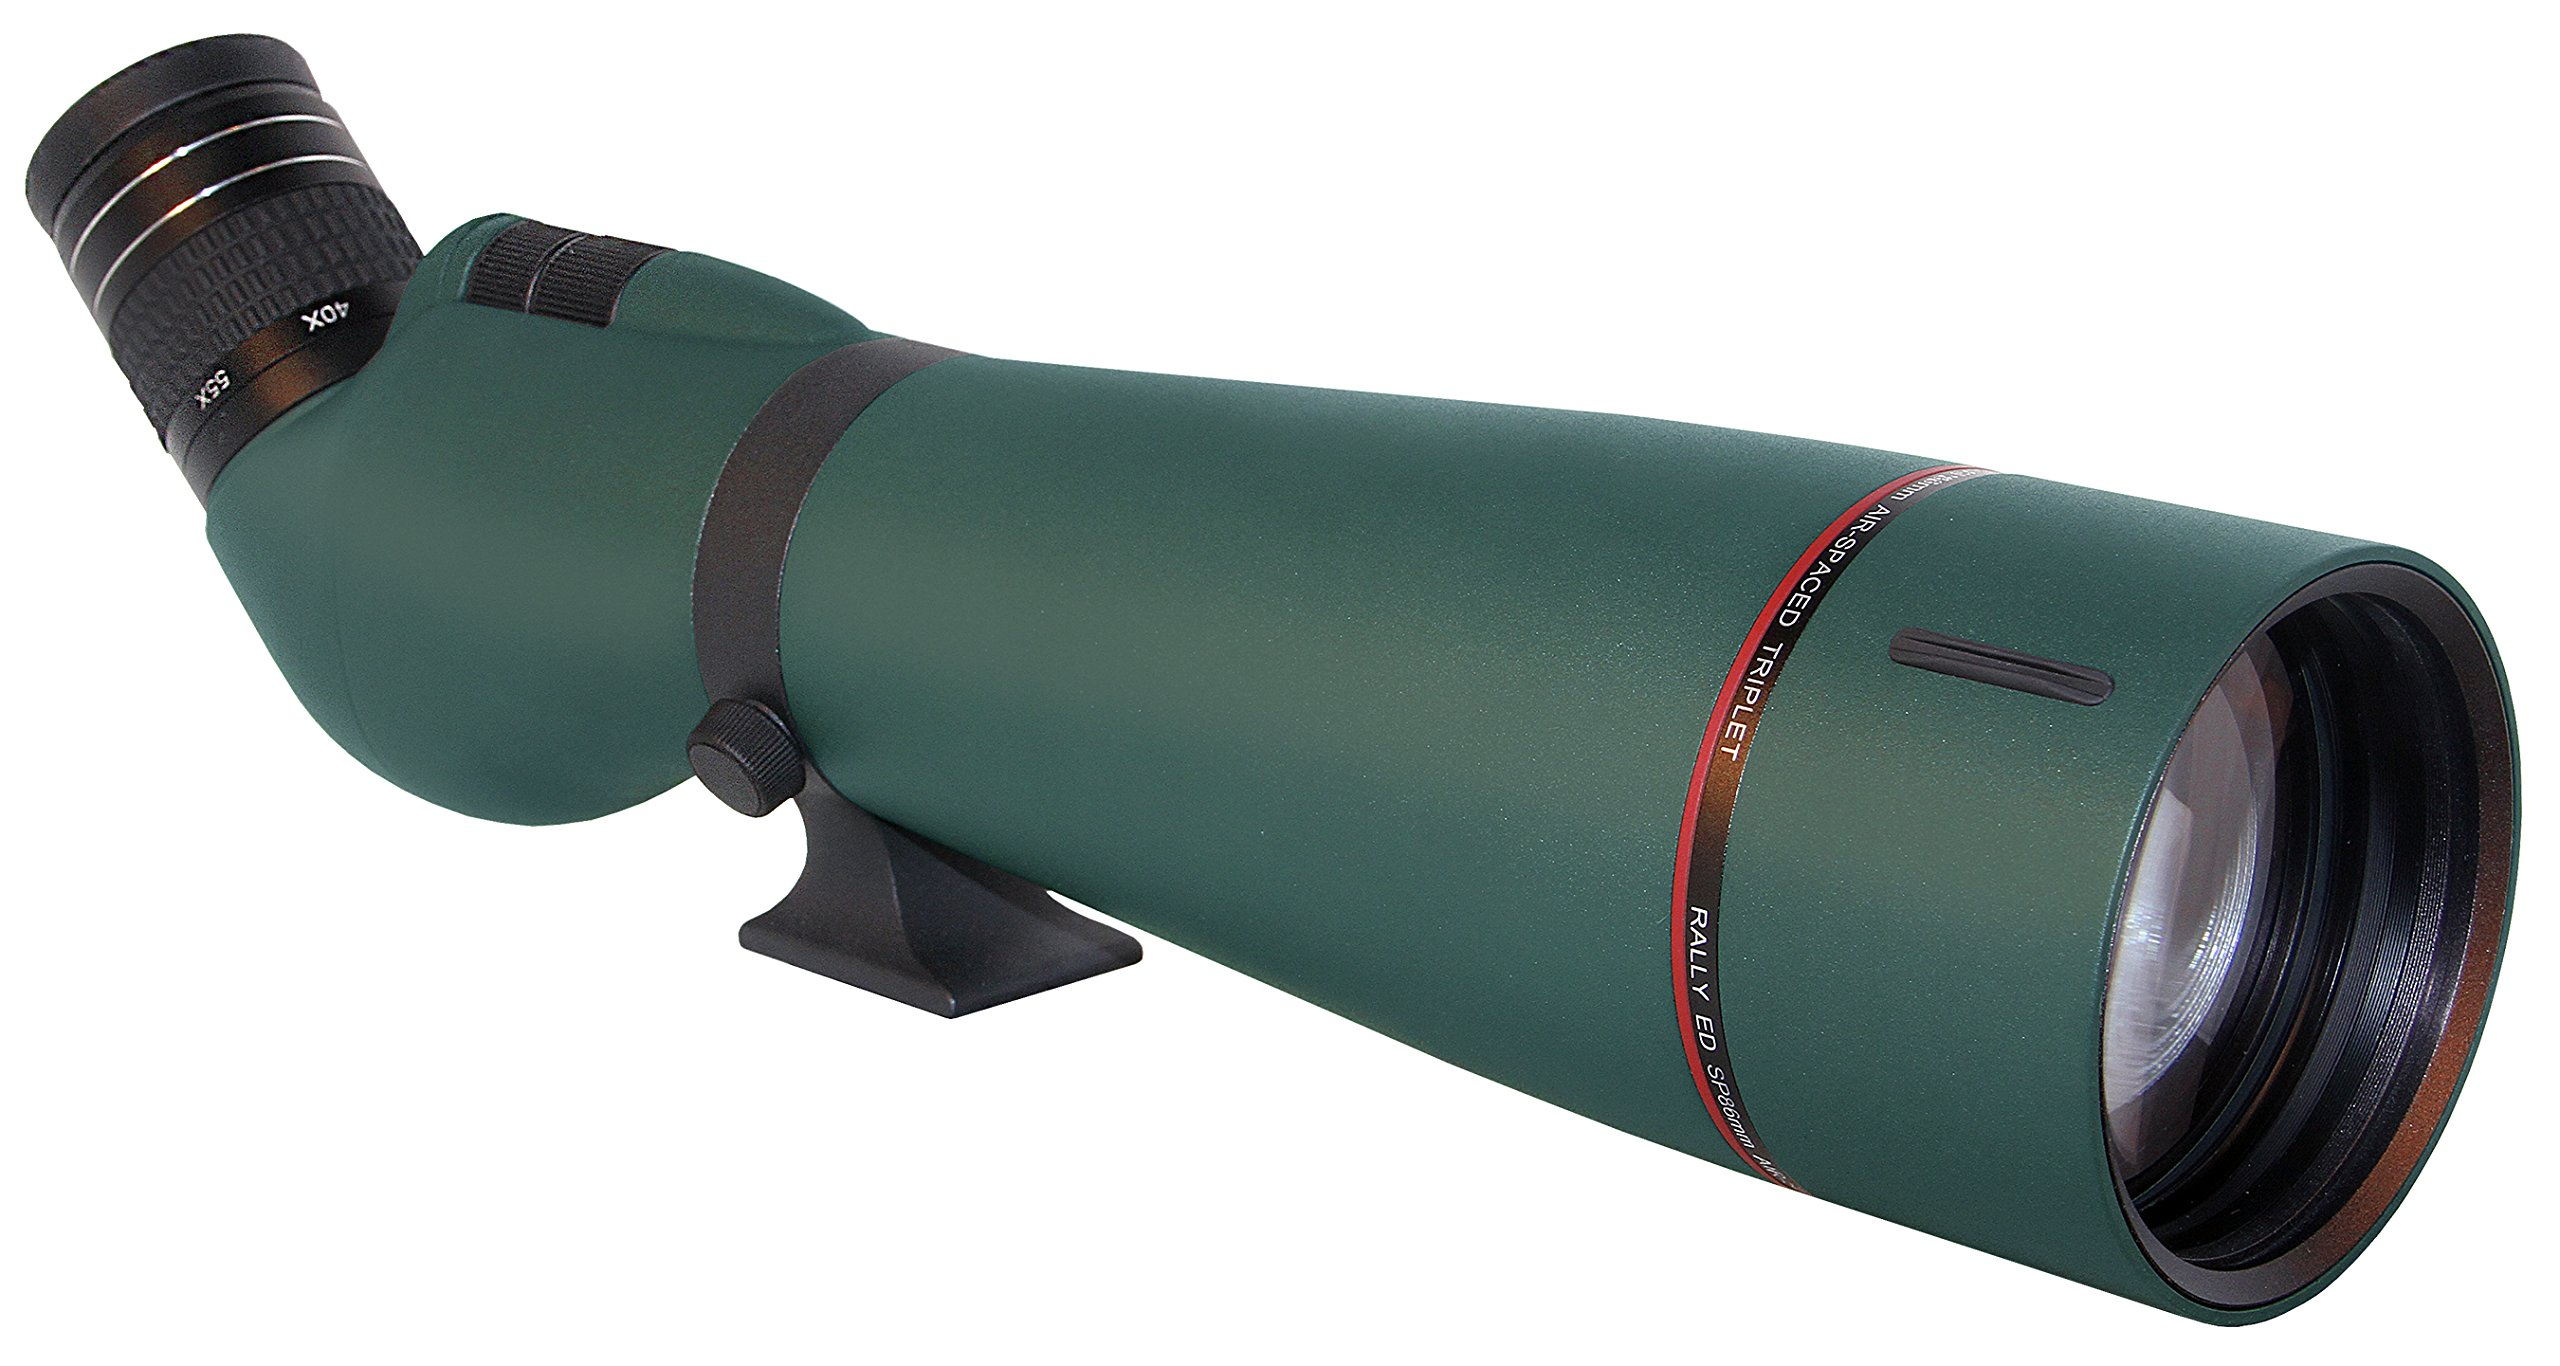 Alpen Optics RAINIER ED HD 25-75x86 w/45 degree eyepiece Waterproof Fogproof Spotting scope. (Winner of Editor's Choice as seen in Outdoor Life Magazine's Gear Test). by Alpen Optics